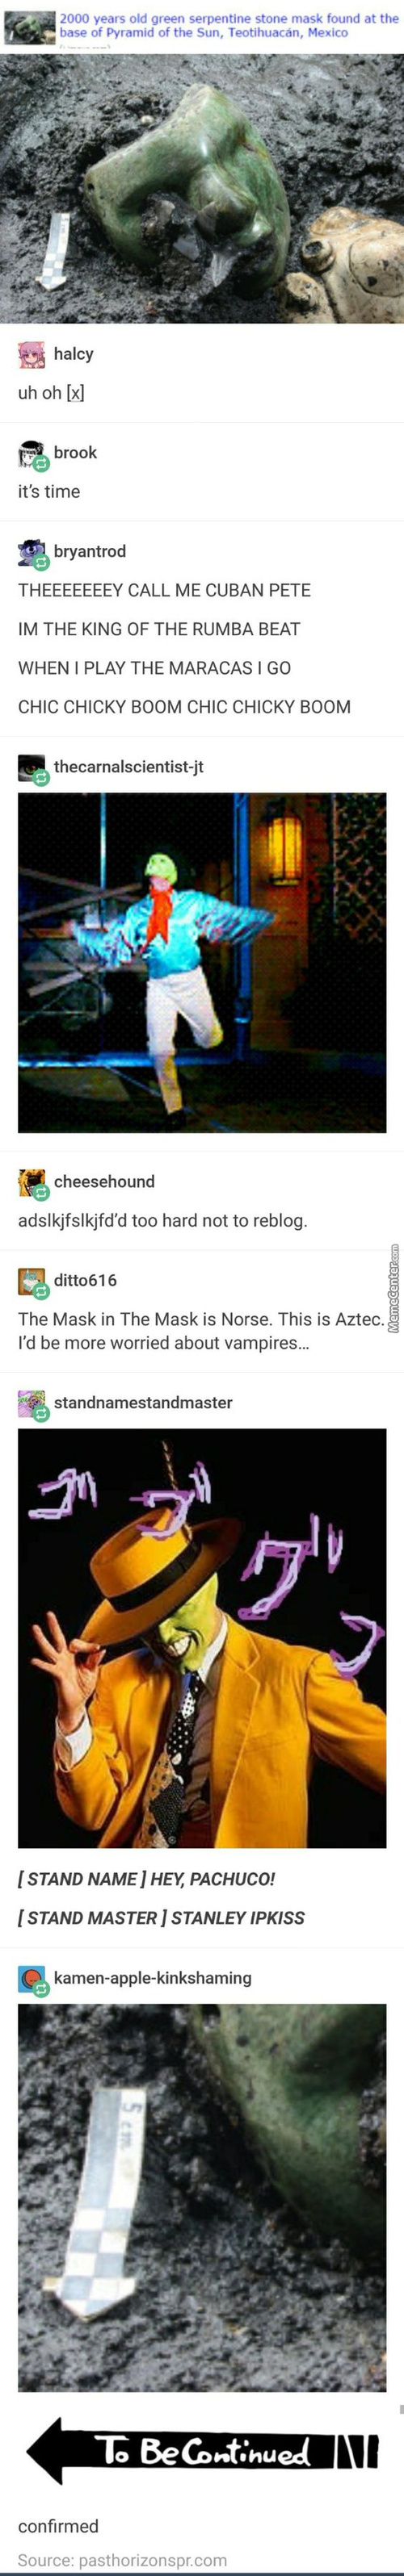 Just Dont Let Dio Brando Get The Mask!